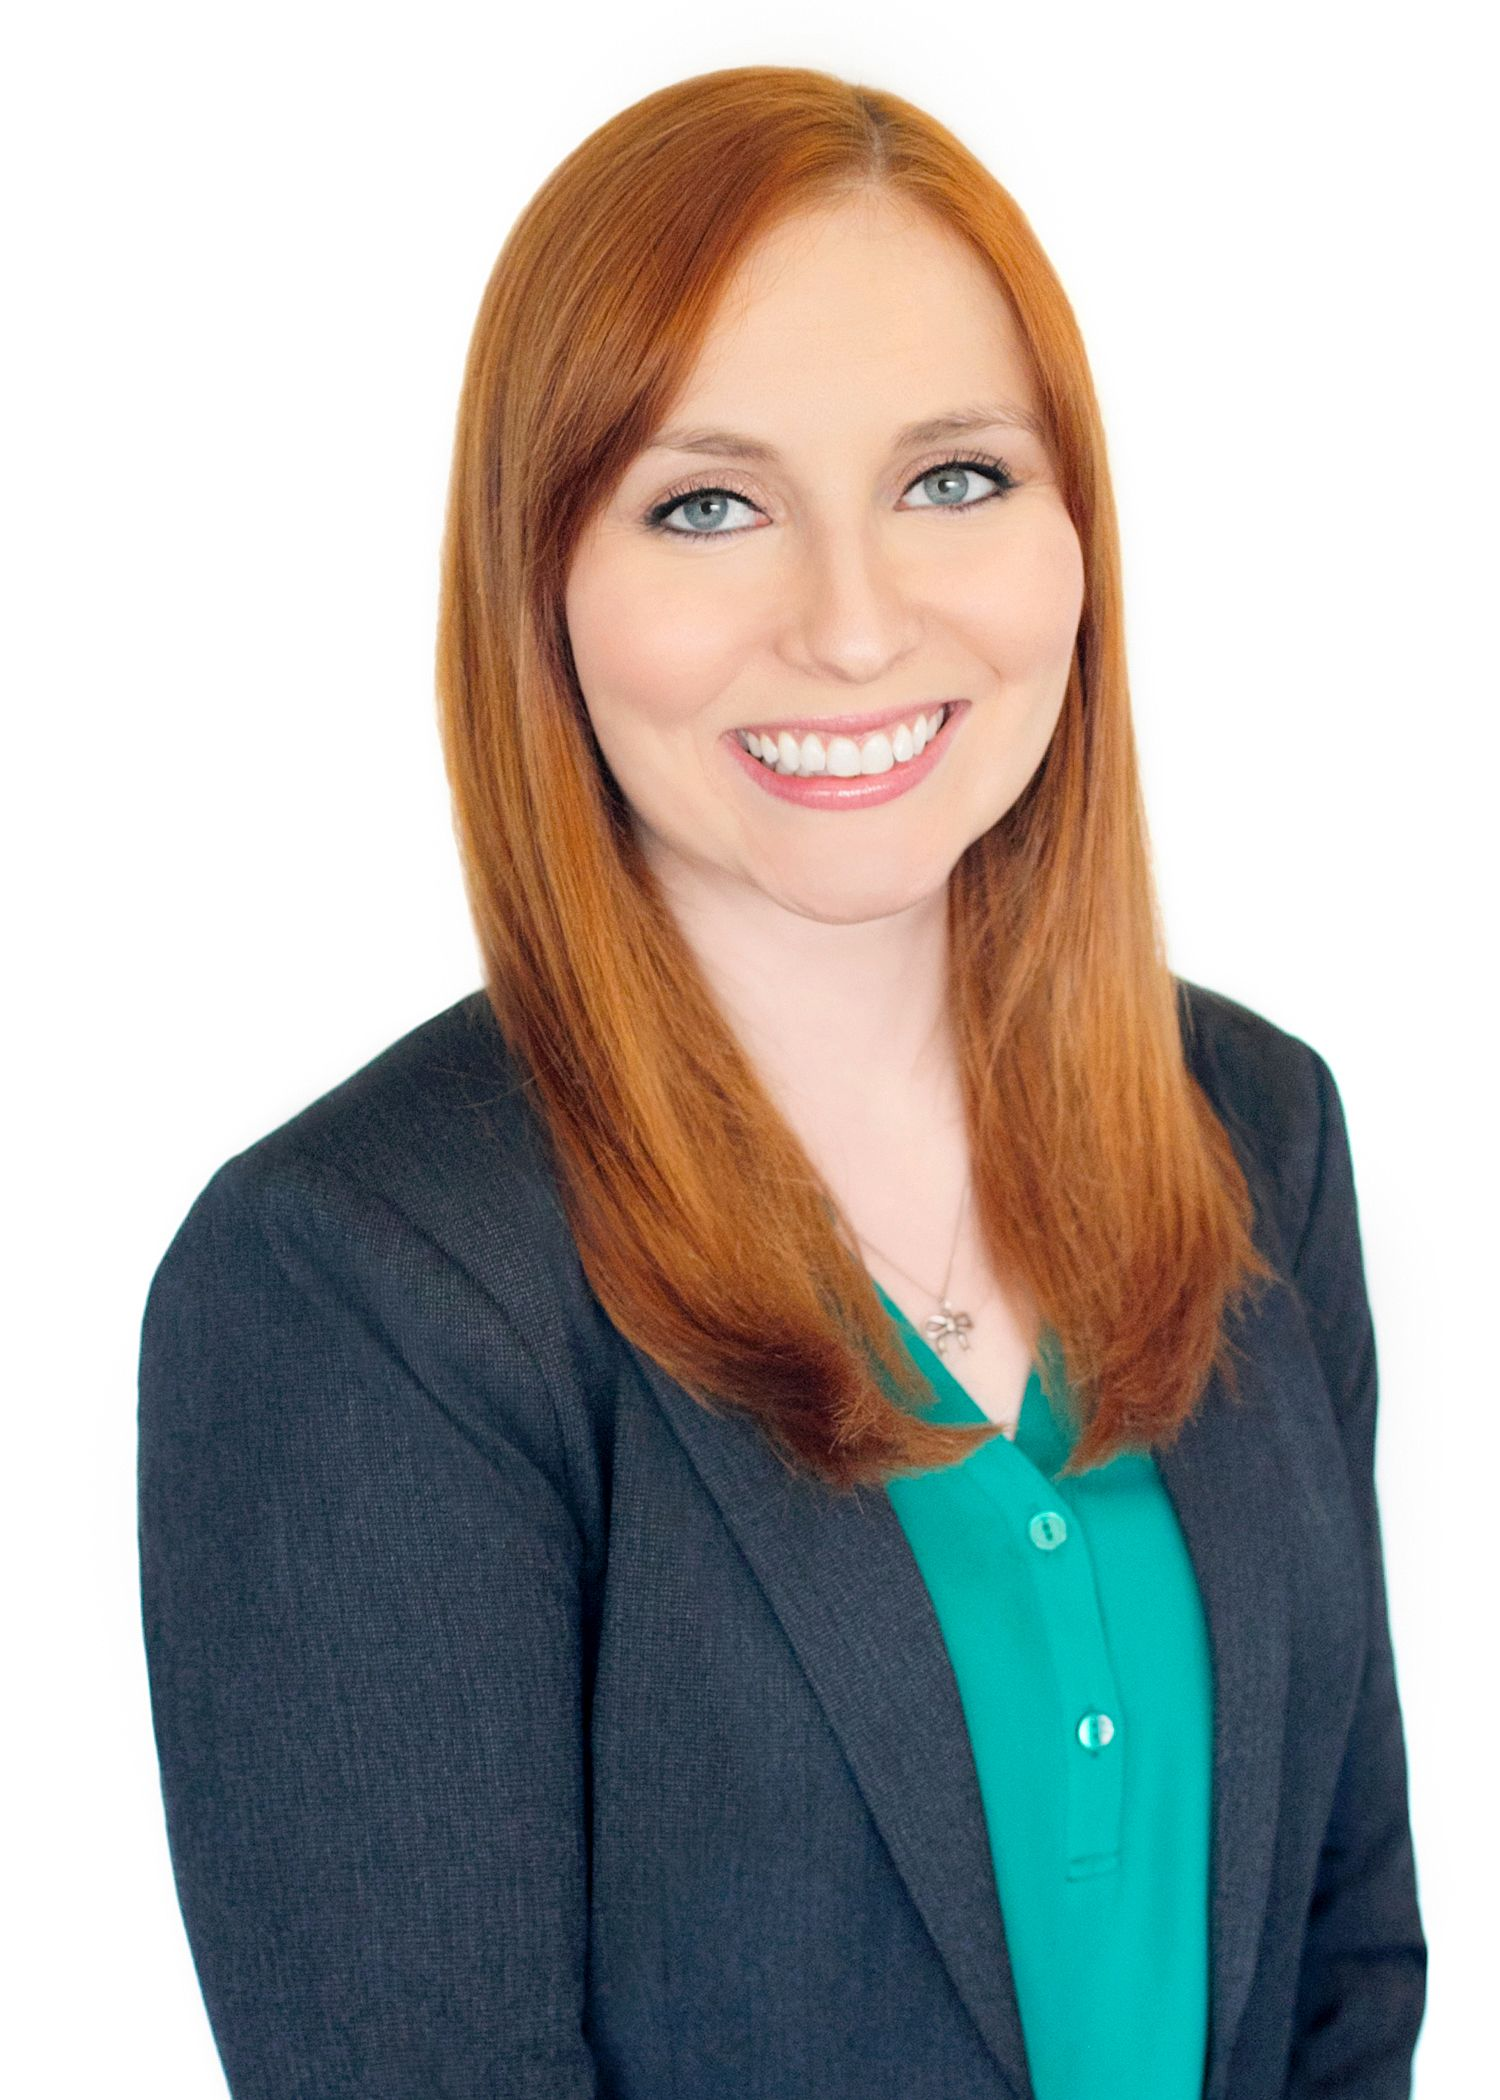 Michelle Gibson - Associate Attorney at Livelihood Law